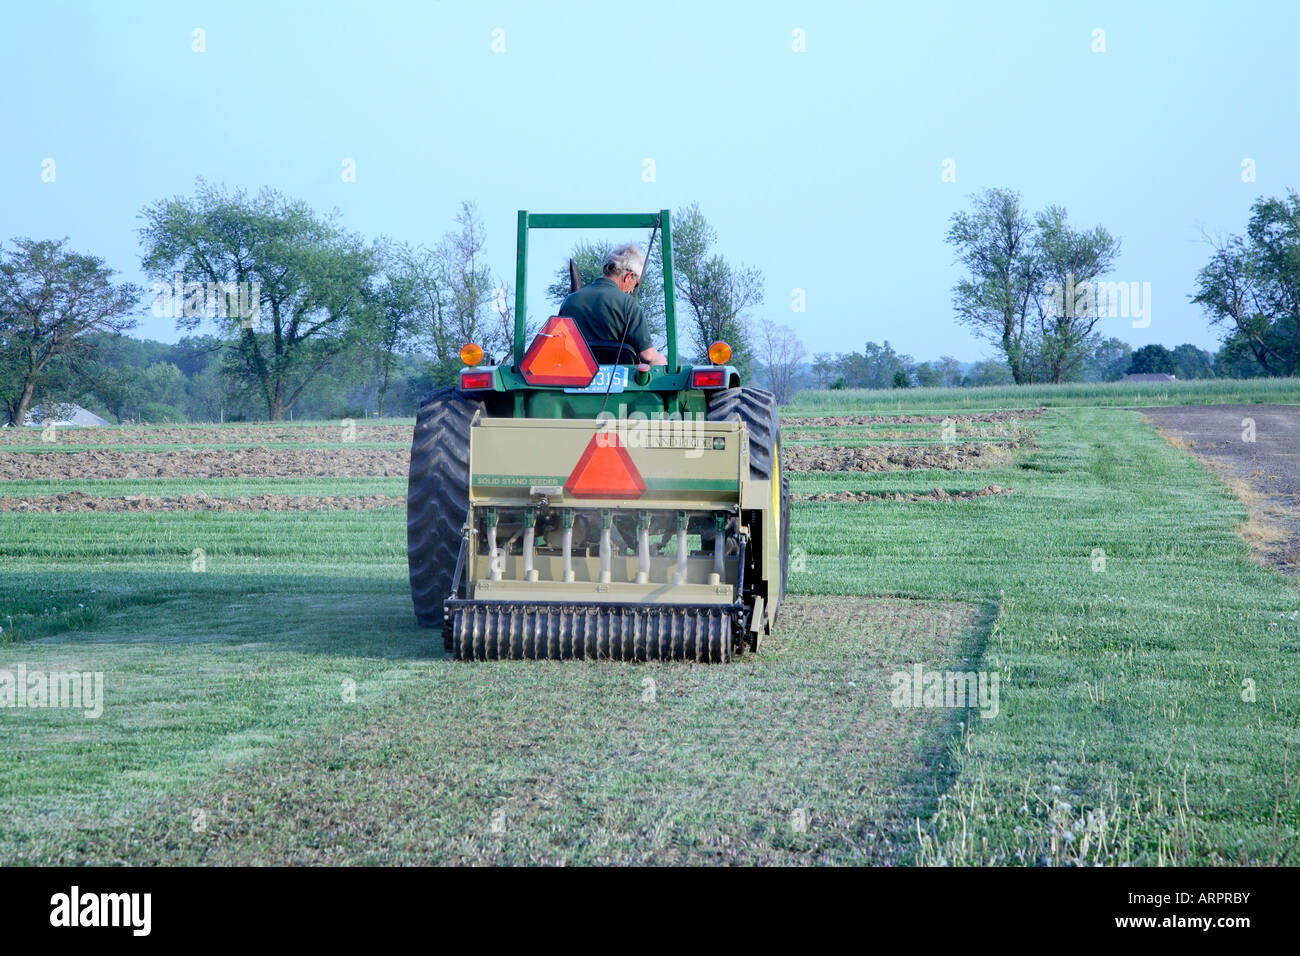 Man driving tractor pulling a slitting seeder. - Stock Image